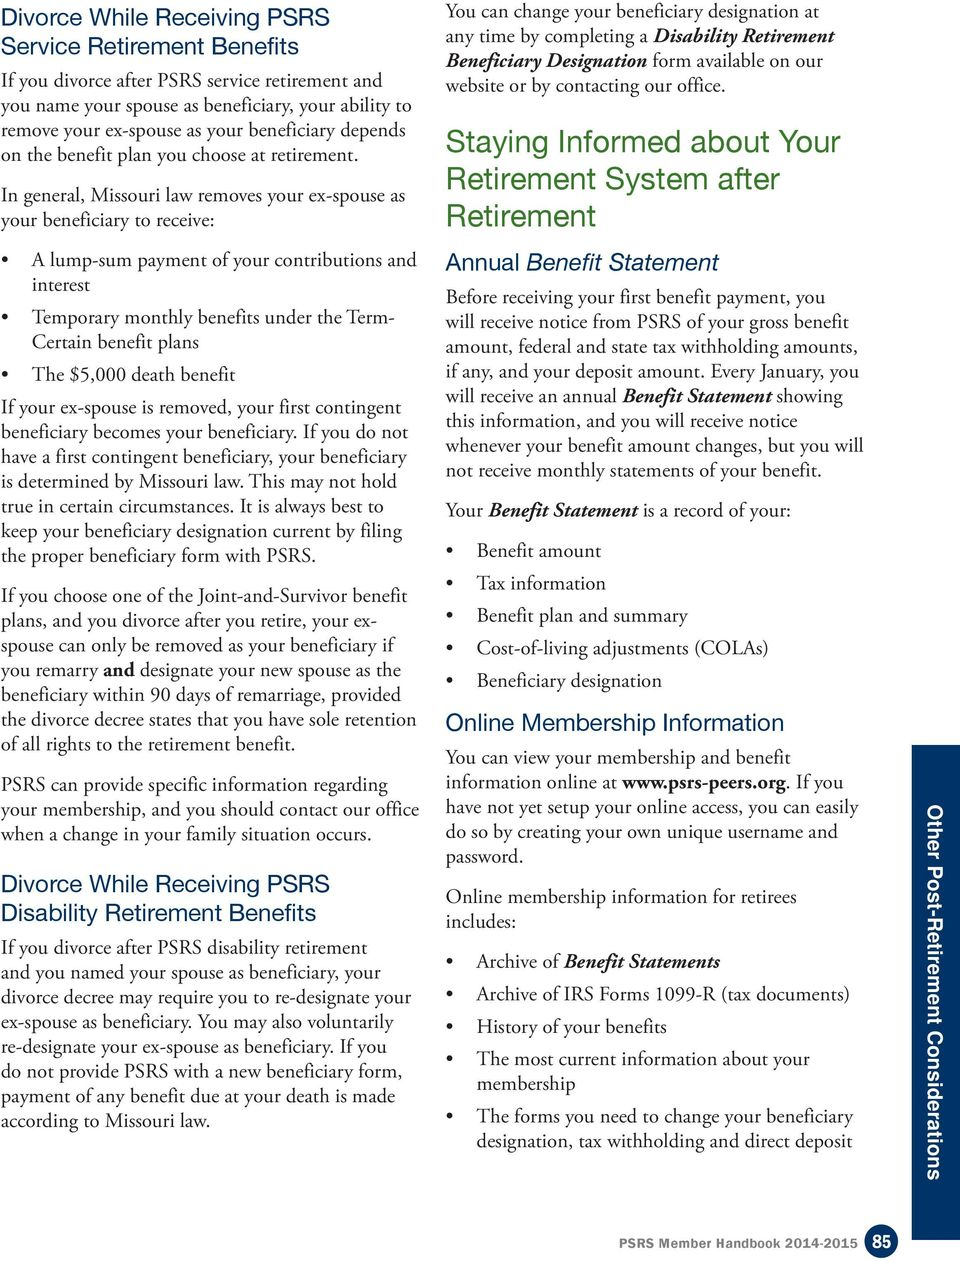 Other Post-Retirement Considerations - PDF